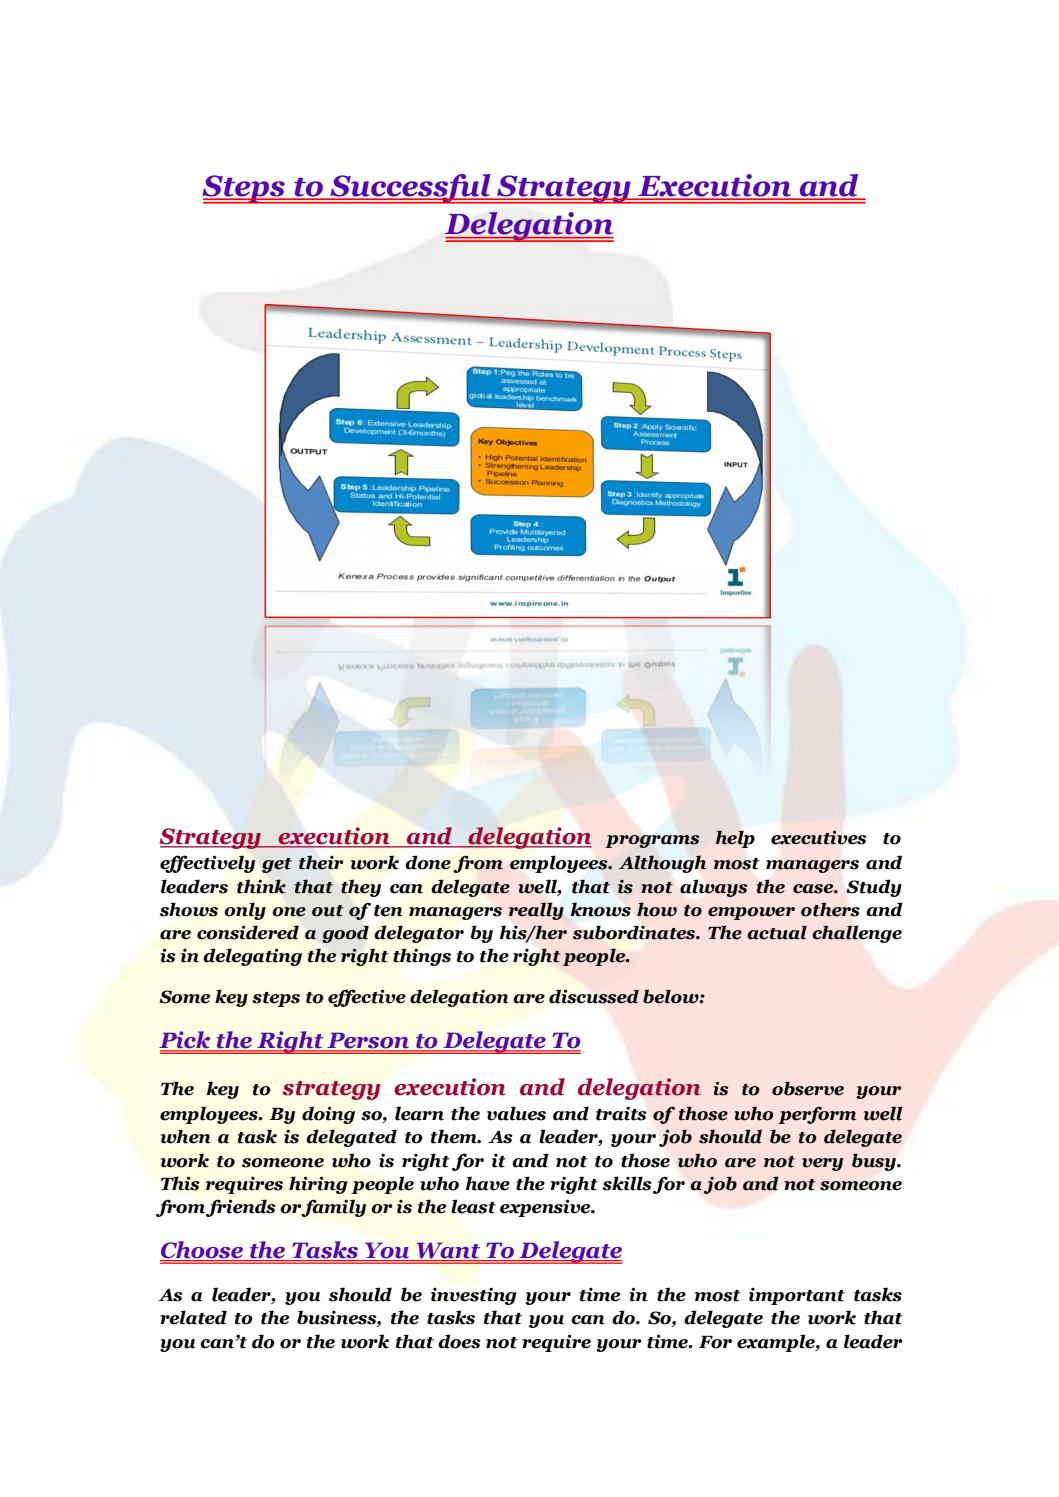 Steps To Successful Strategy Execution And Delegation By